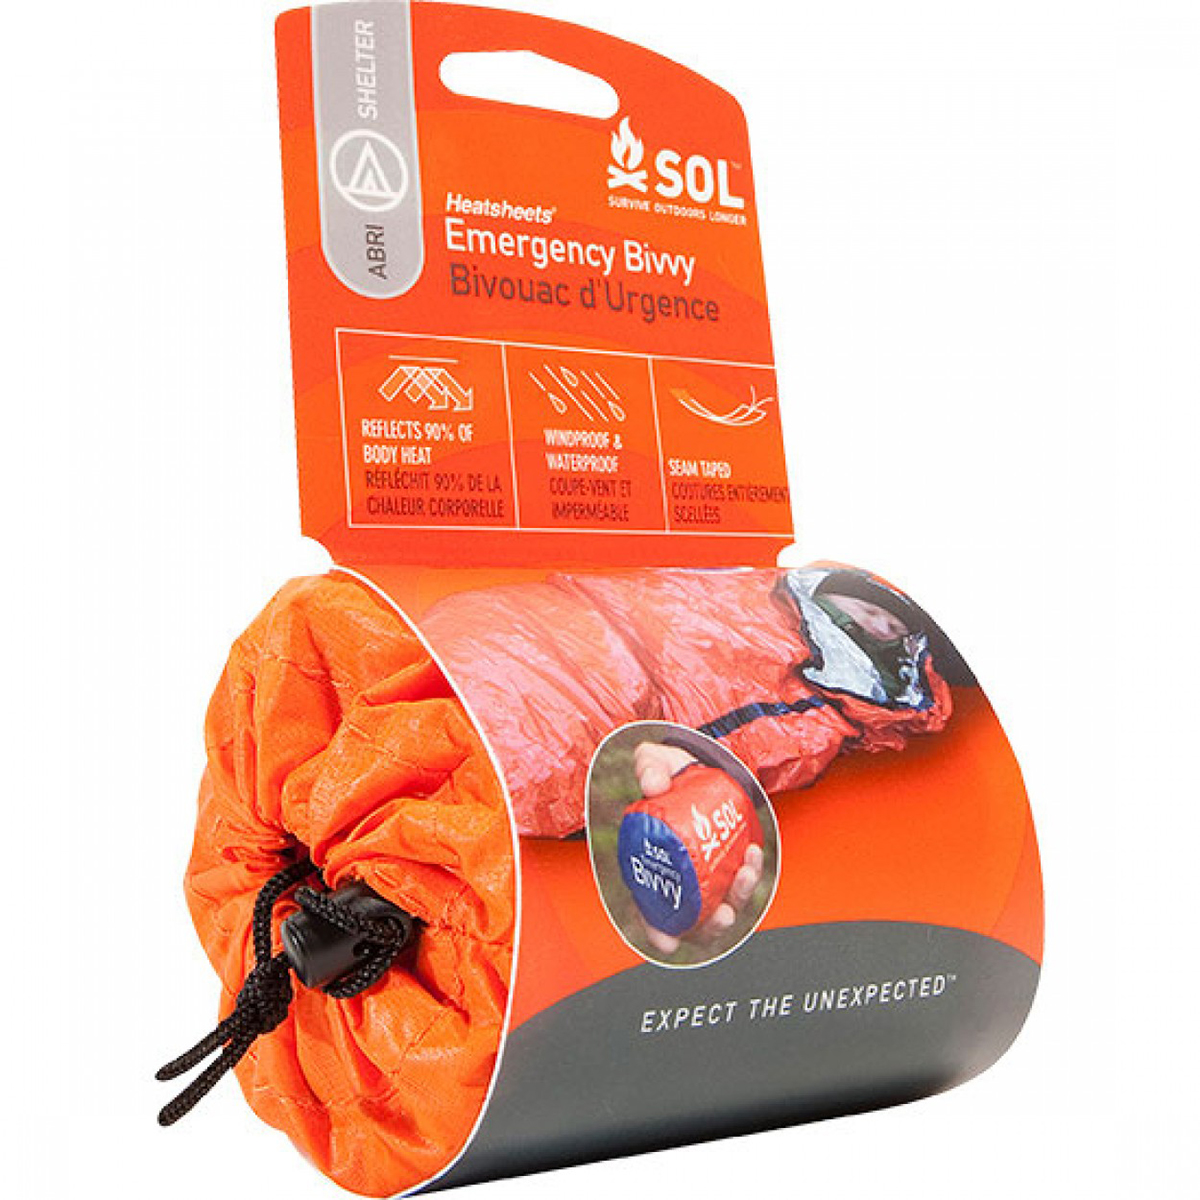 AMK Emergency Bivvy (1 Persons) | item_misc